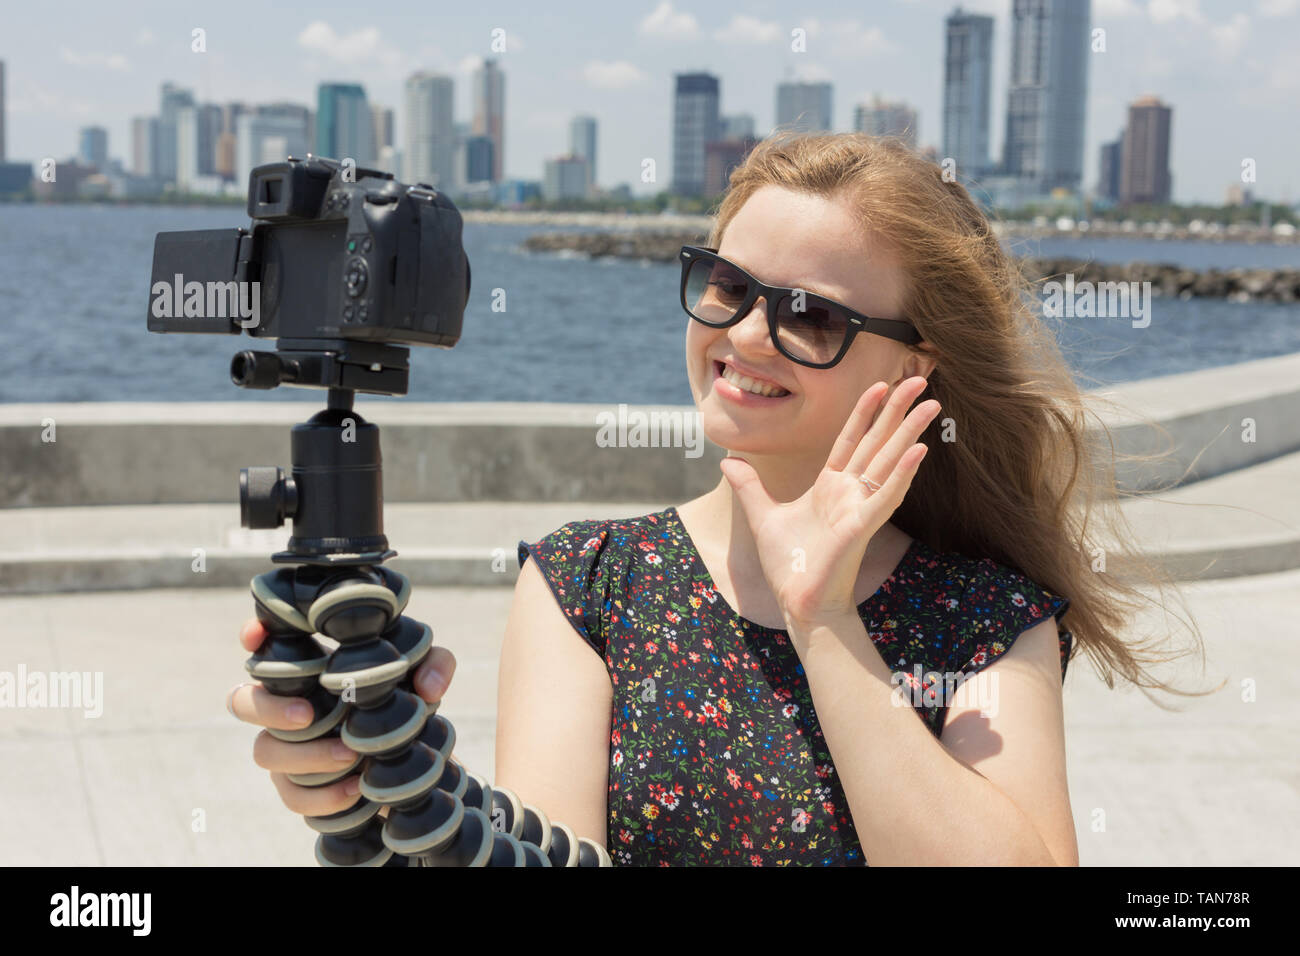 Camera recording a young caucasian woman blogger making a video or selfie Stock Photo